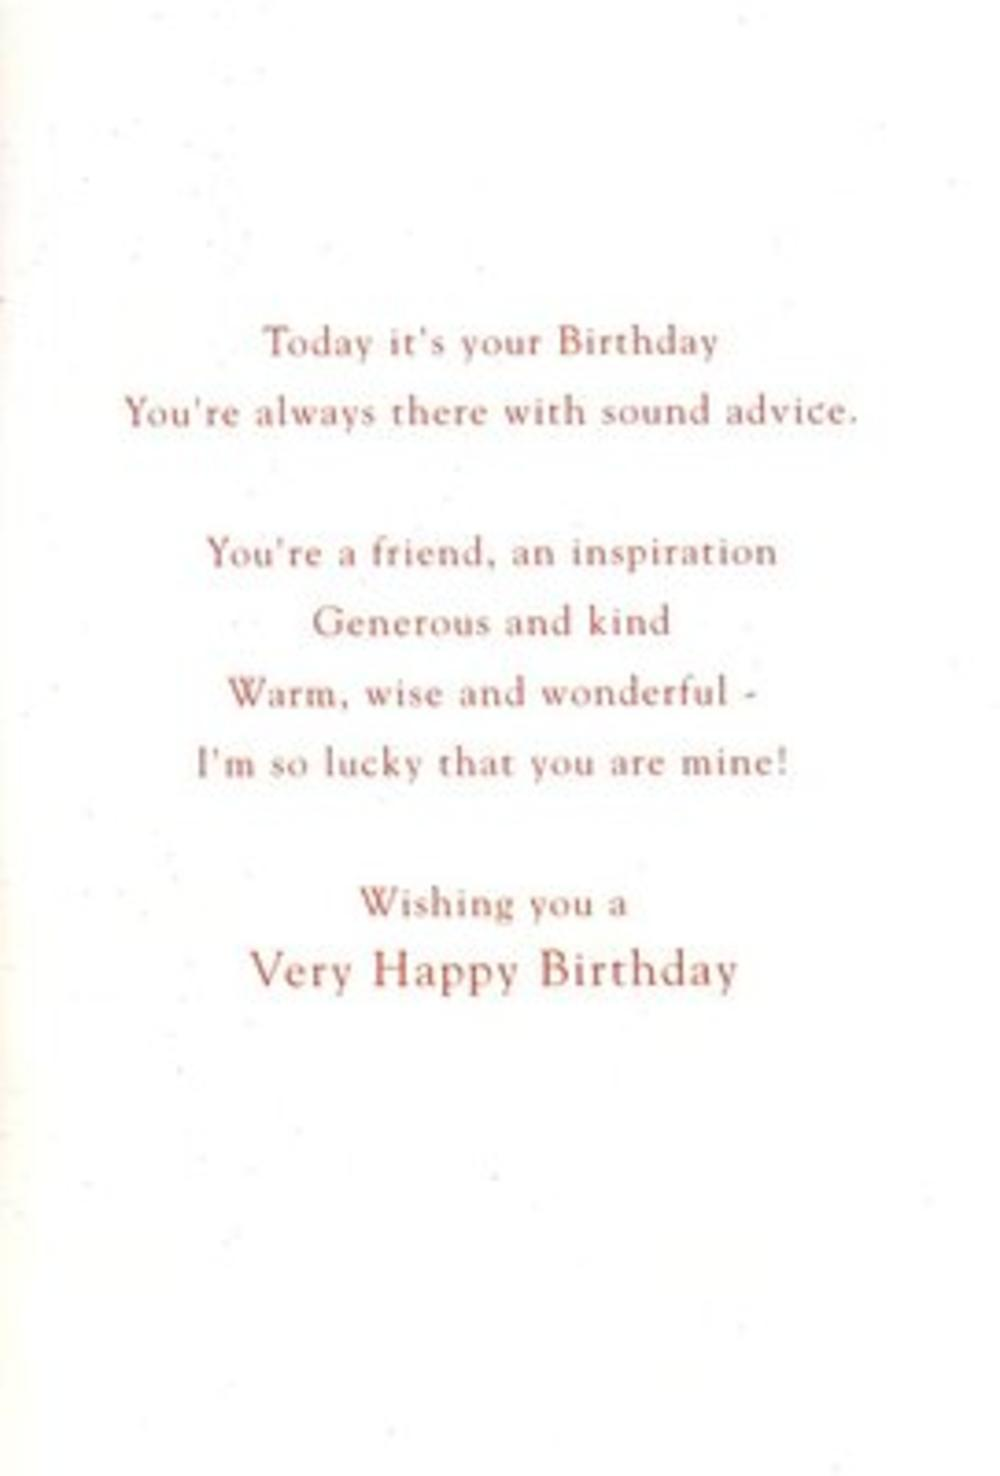 Grandad Birthday Poetry In Motion Card Cards – Short Poems for Birthday Cards